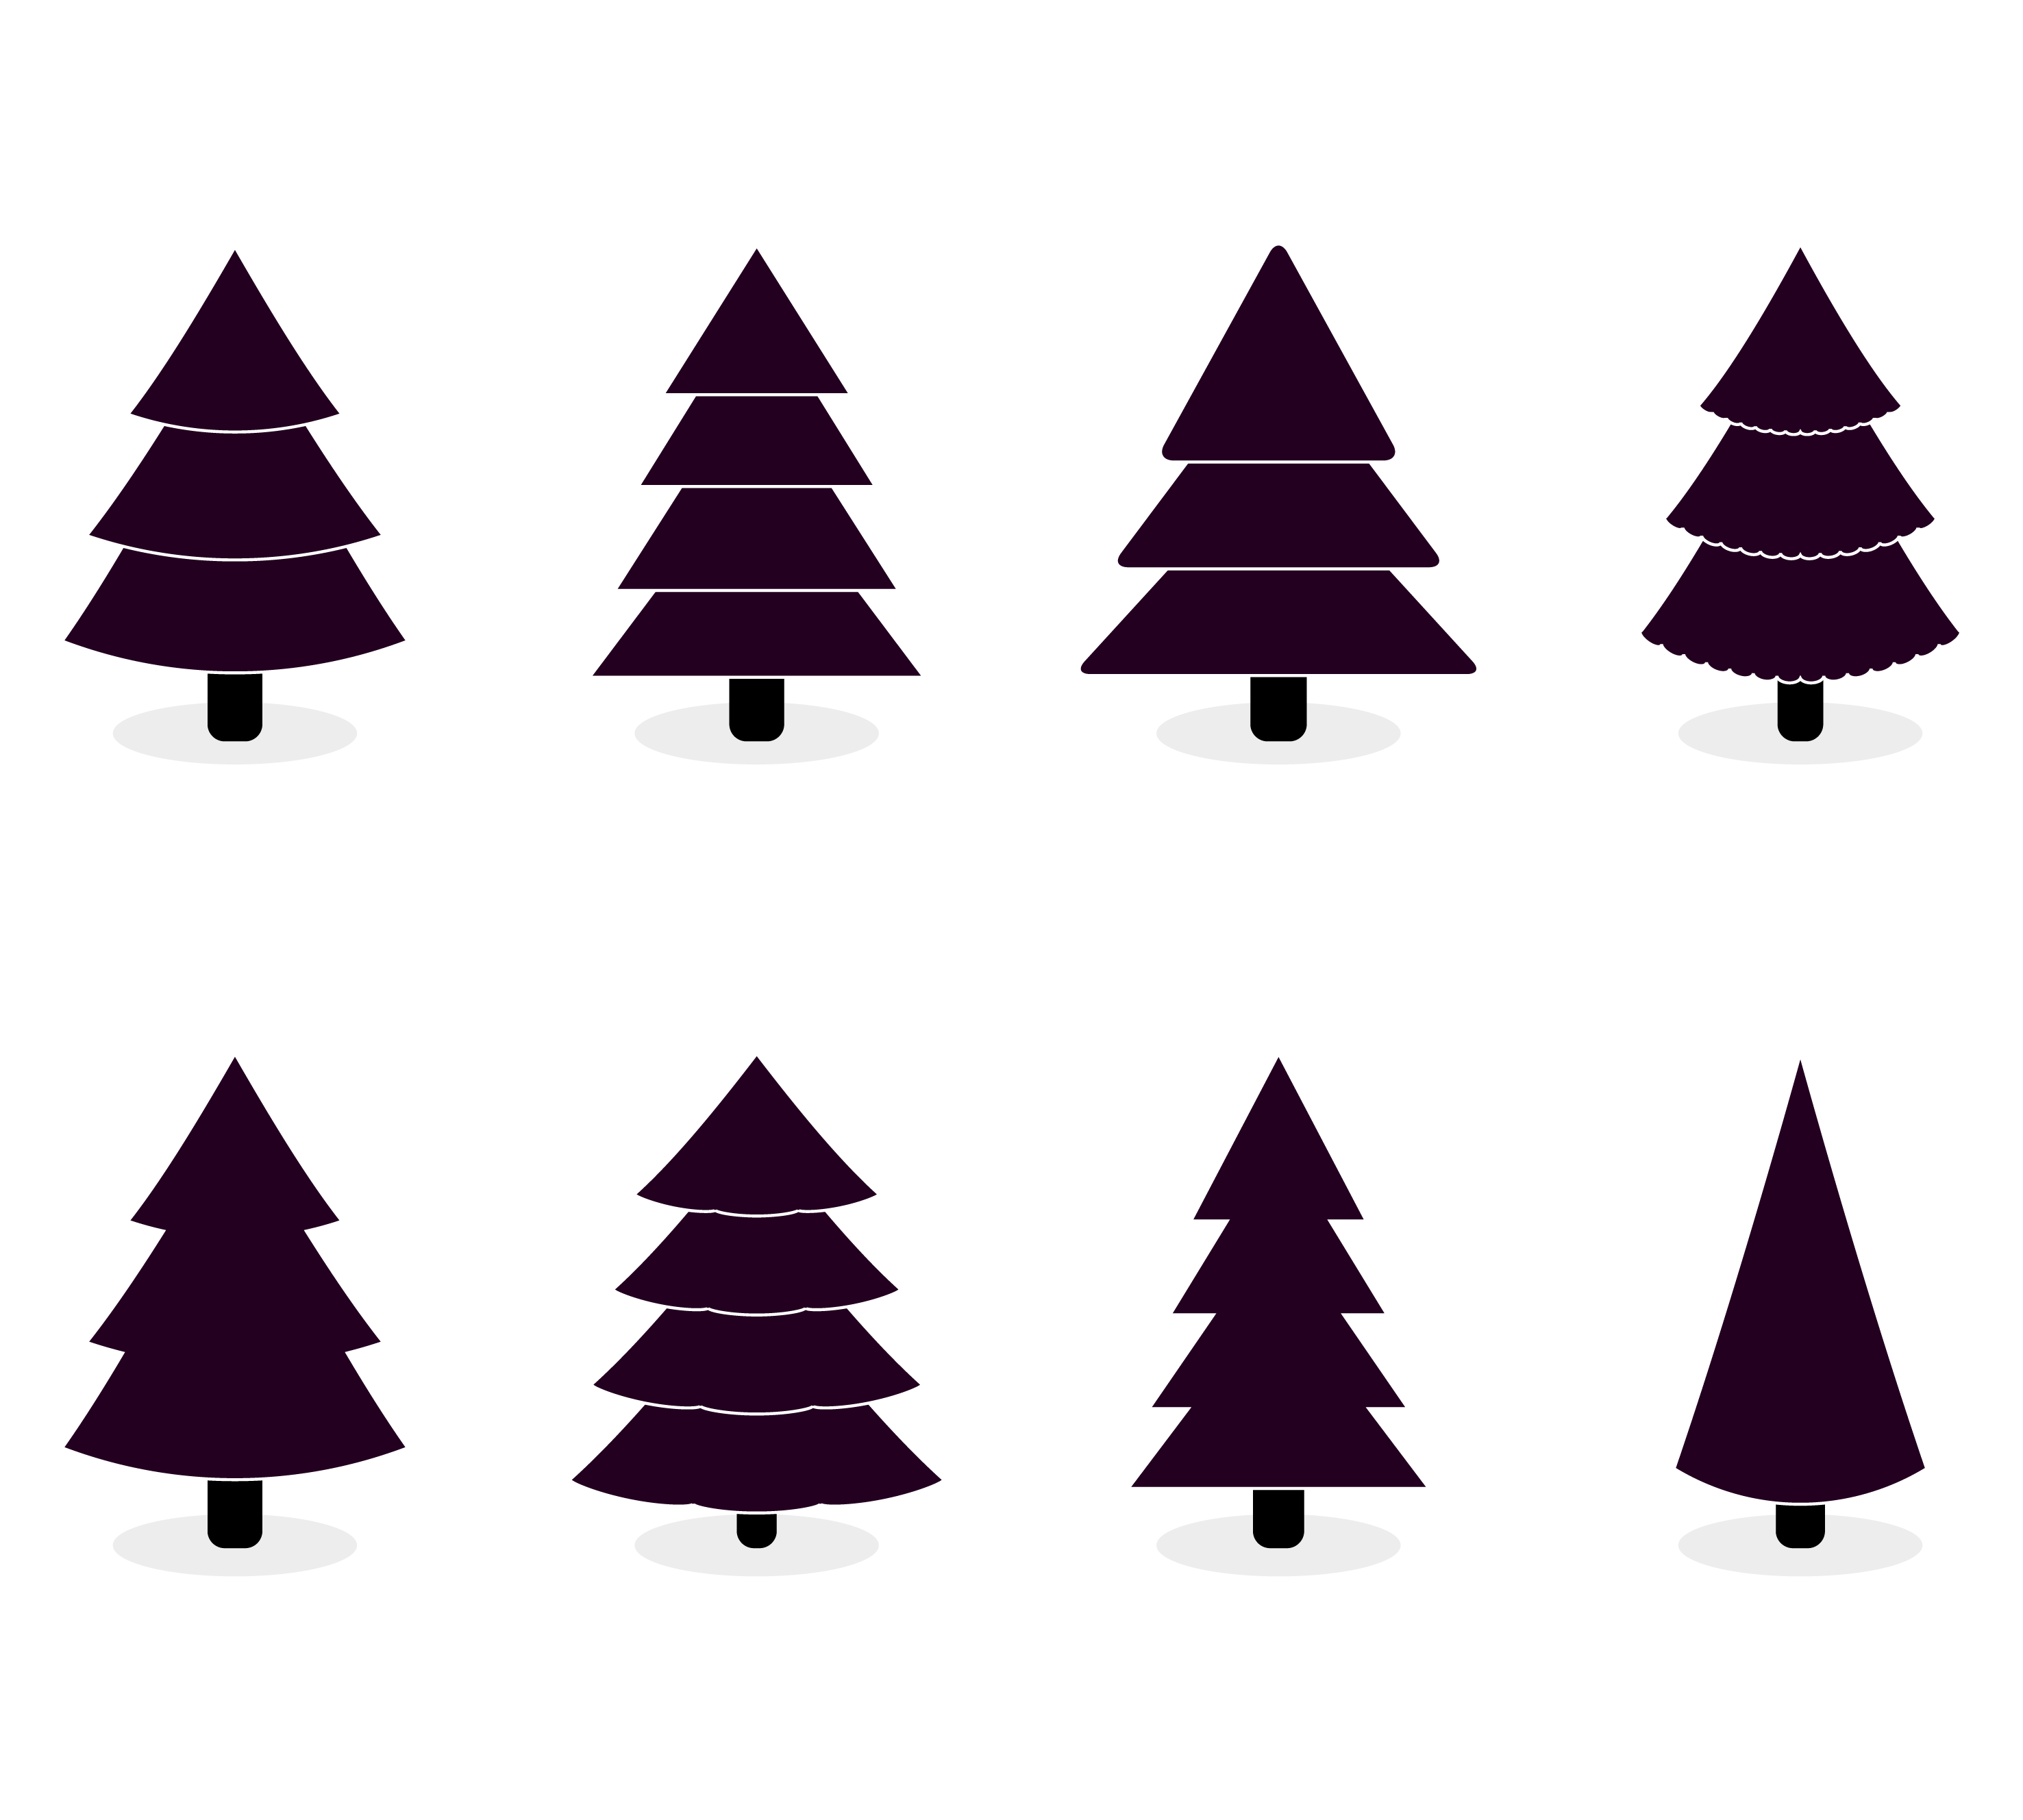 Xmas Tree Black White Color To Holiday Design By 09910190